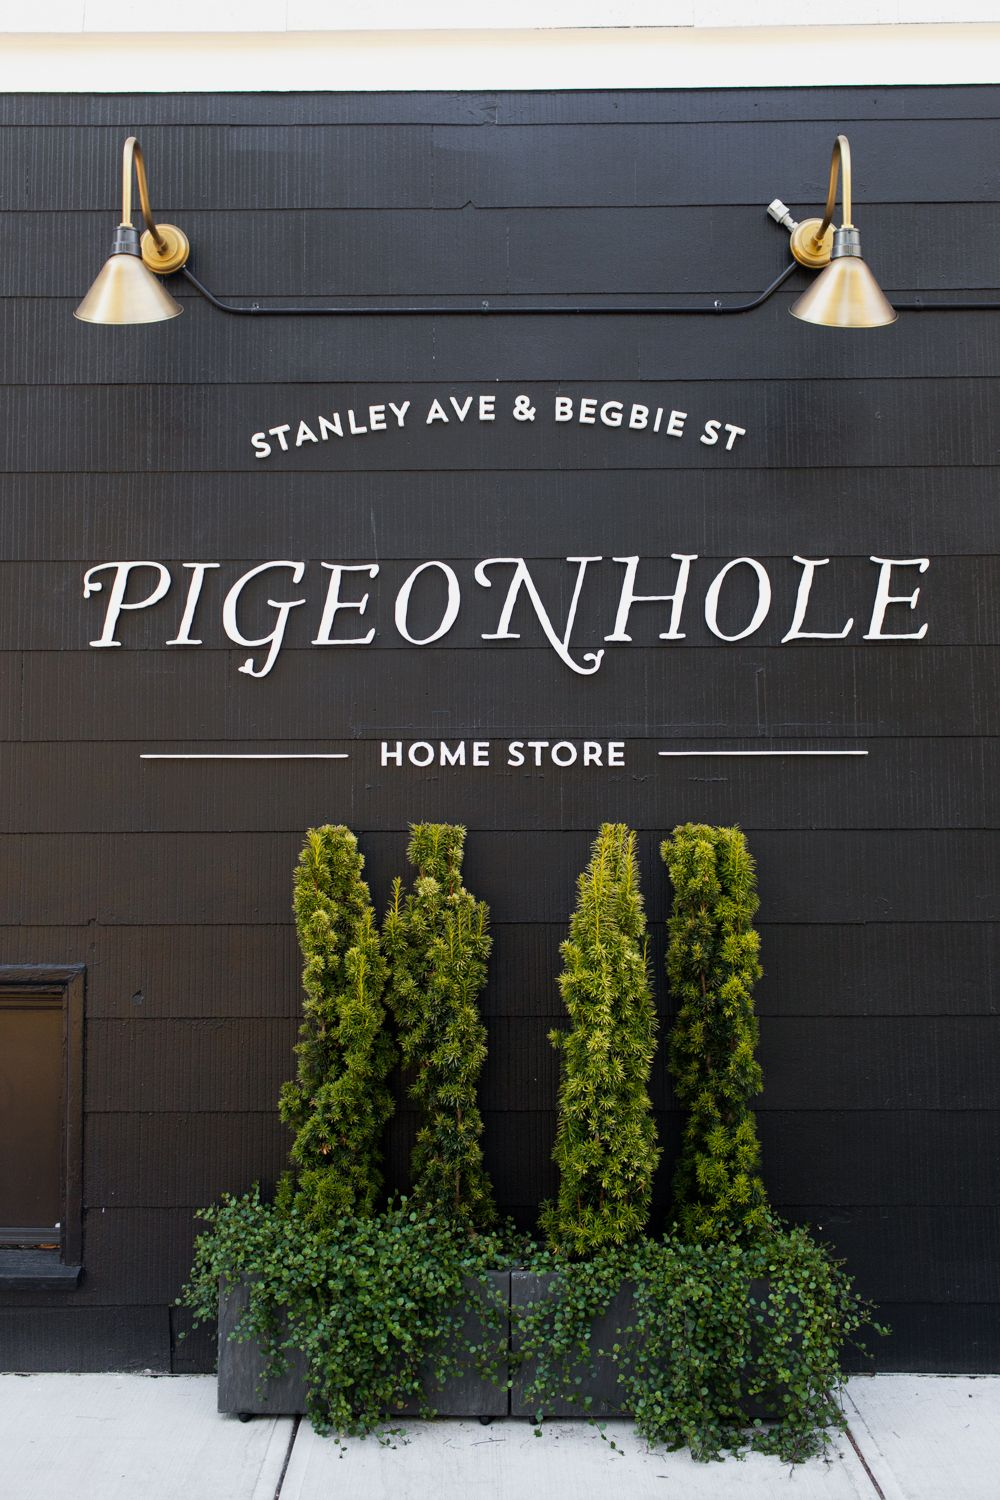 Jan 1 Pigeonhole Home Store. Jan 1 Pigeonhole Home Store   Store  Store fronts and Signage